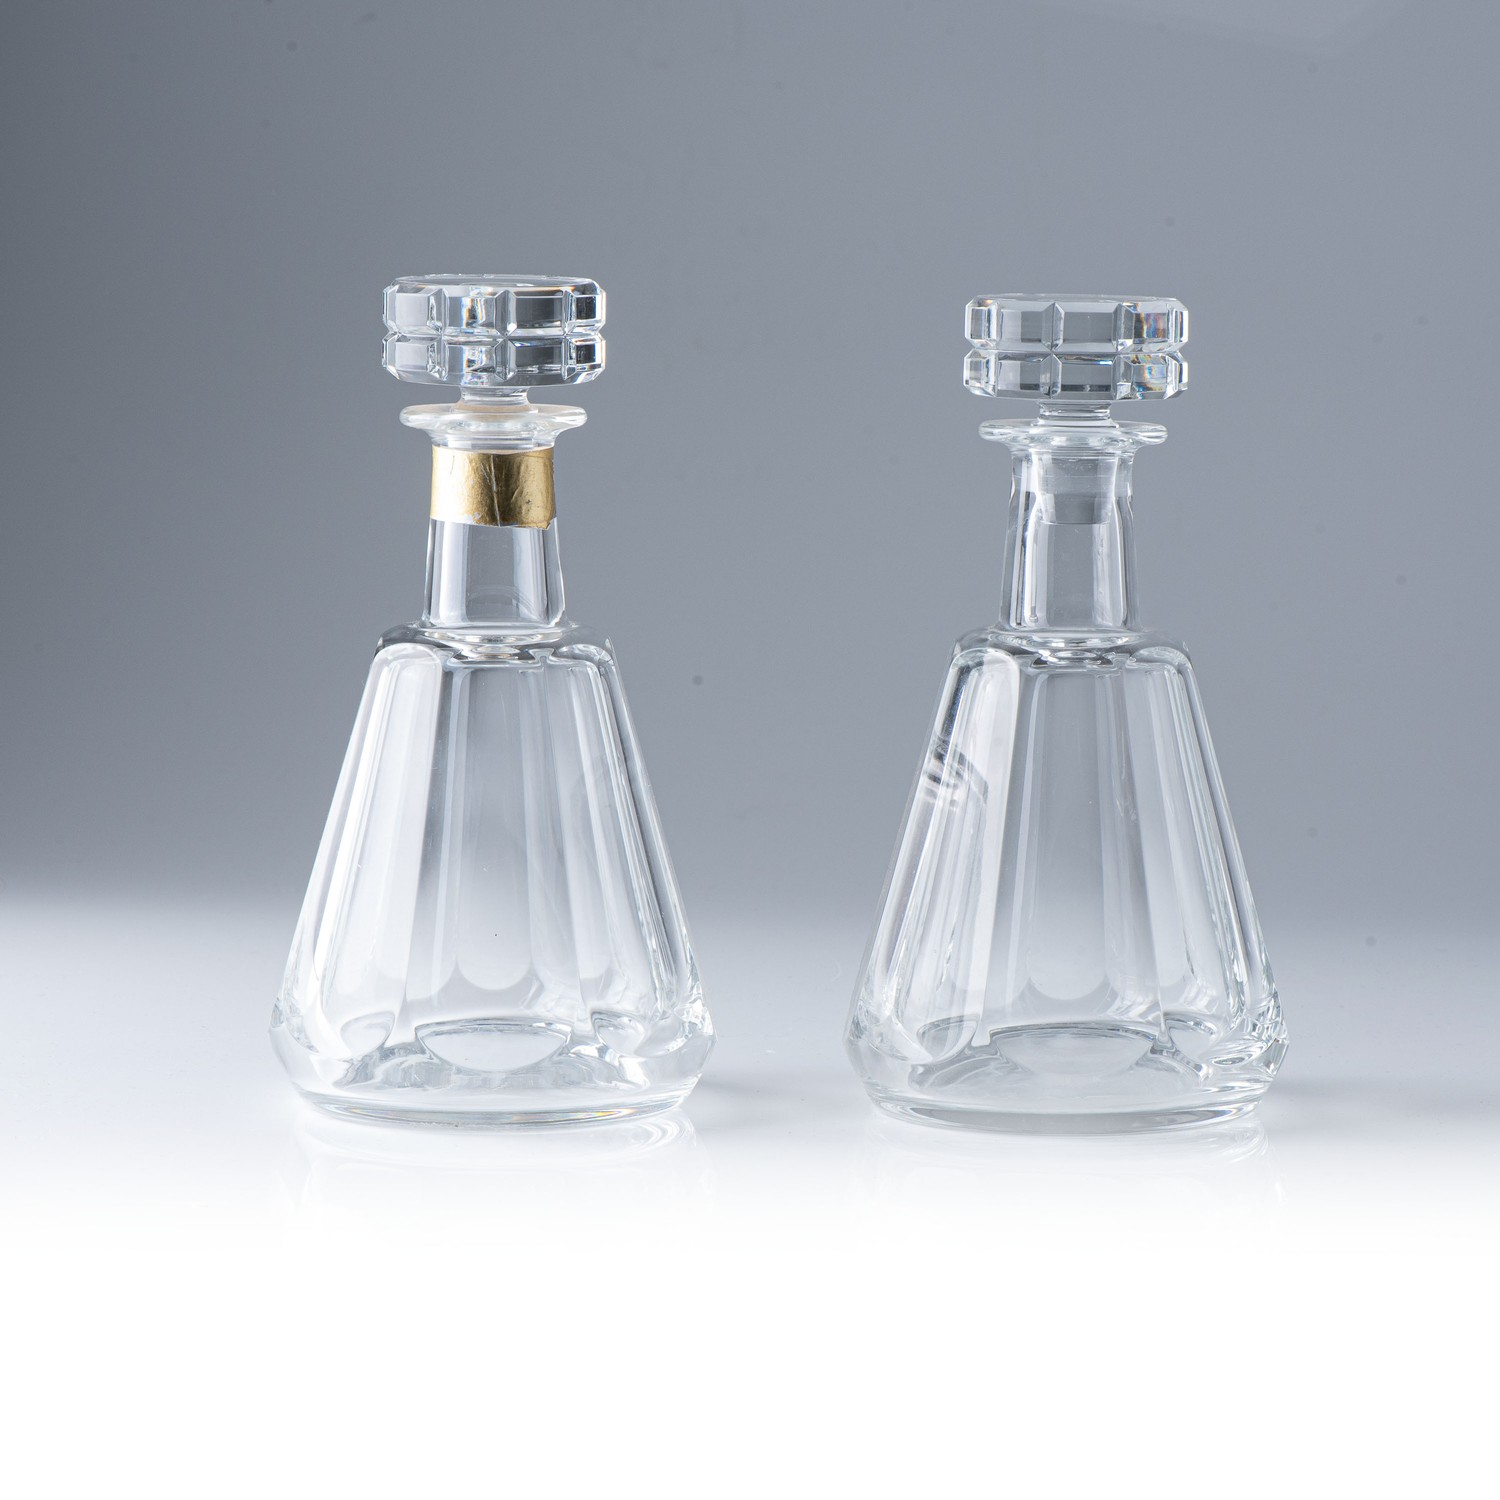 A NEAR-PAIR OF BACCARAT ?TALLYRAND? DECANTERS